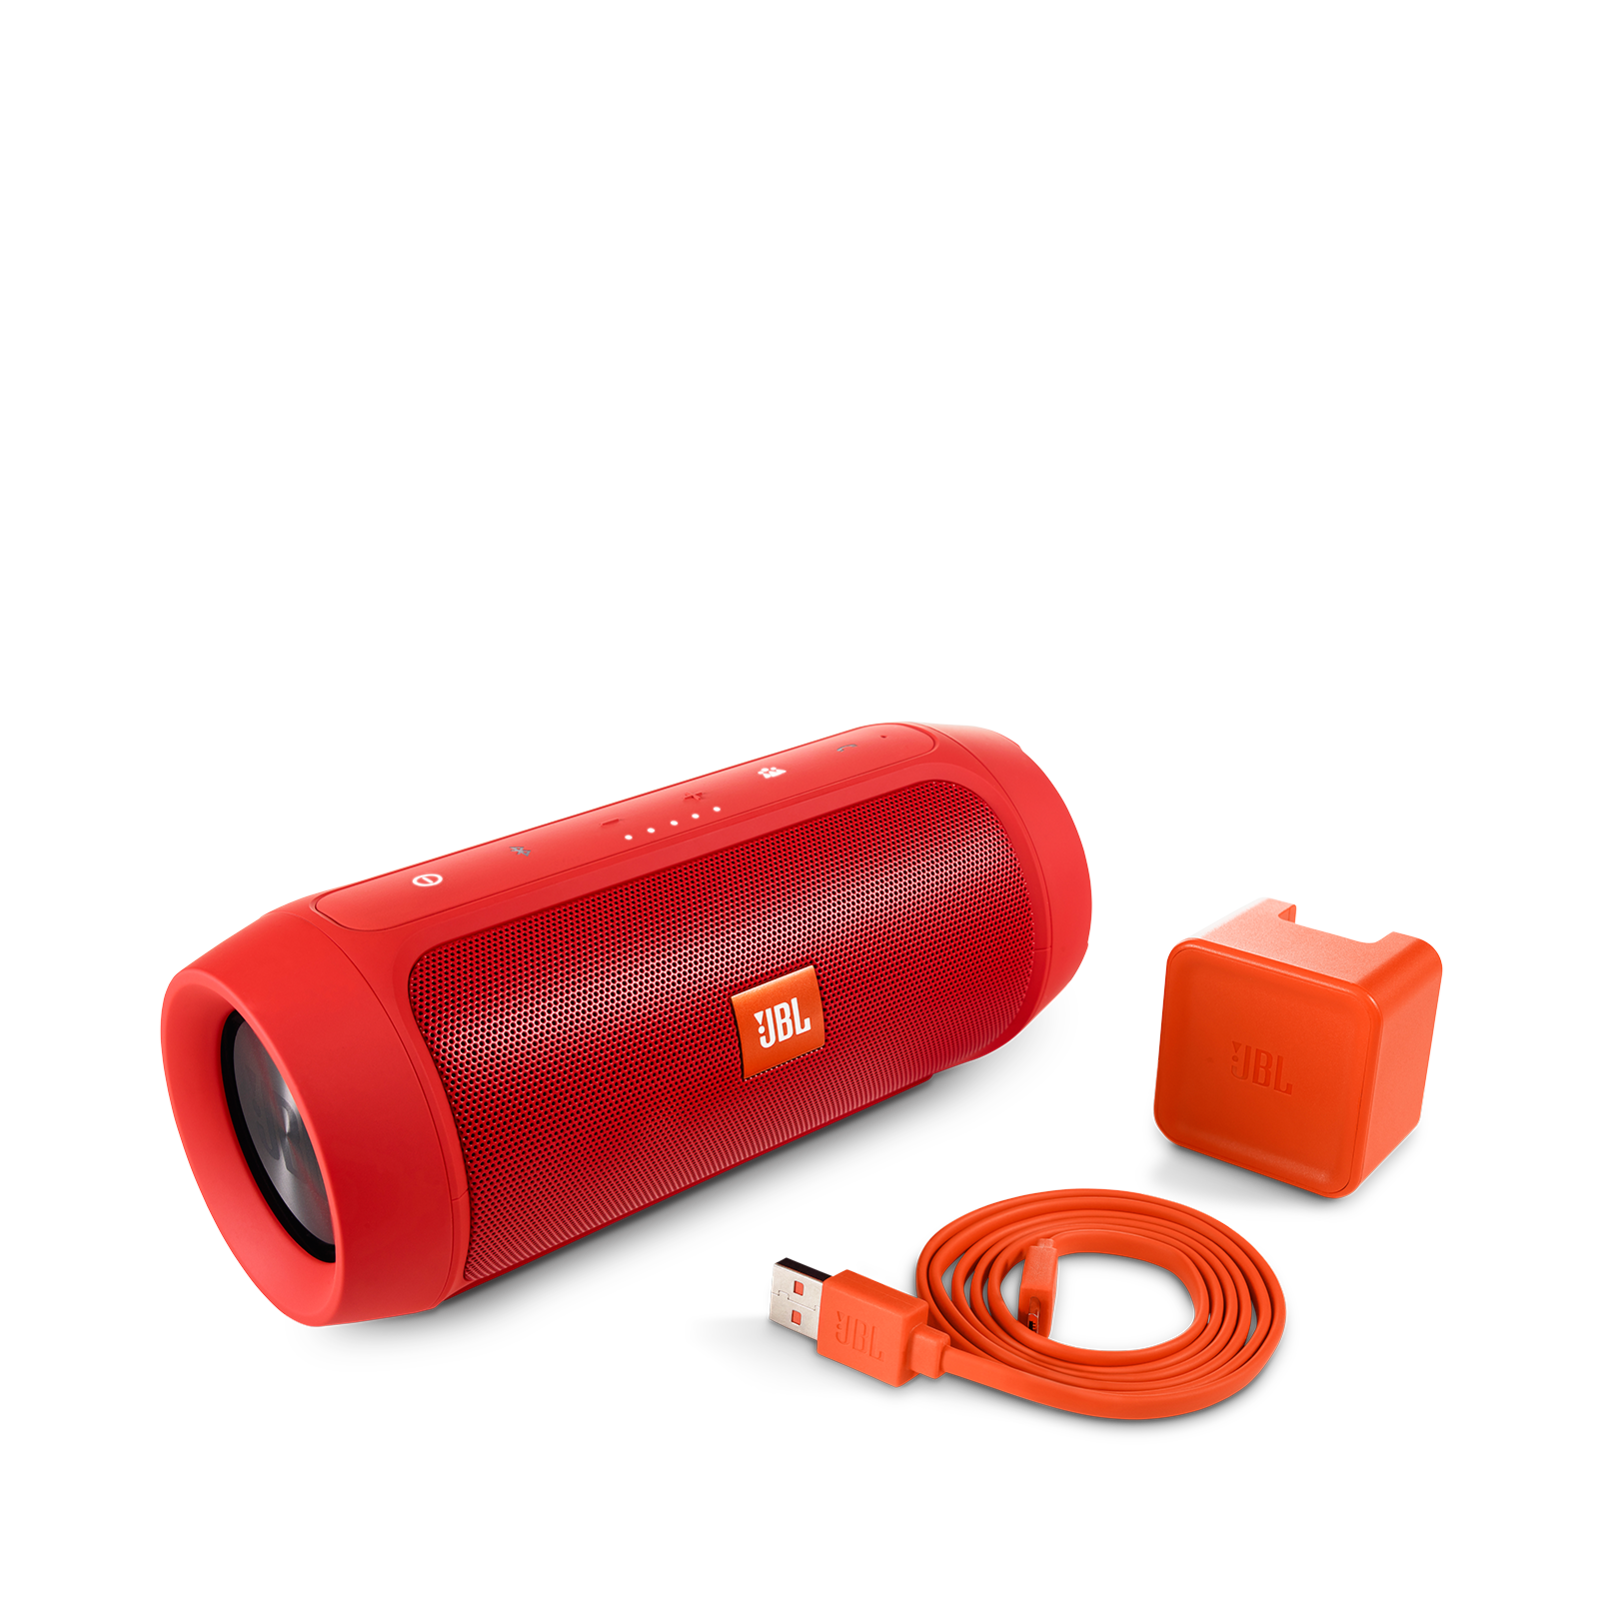 Jbl Charge 2 Splashproof Portable Bluetooth Speaker With Usb Charger The Big 3 Car Audio Diagram